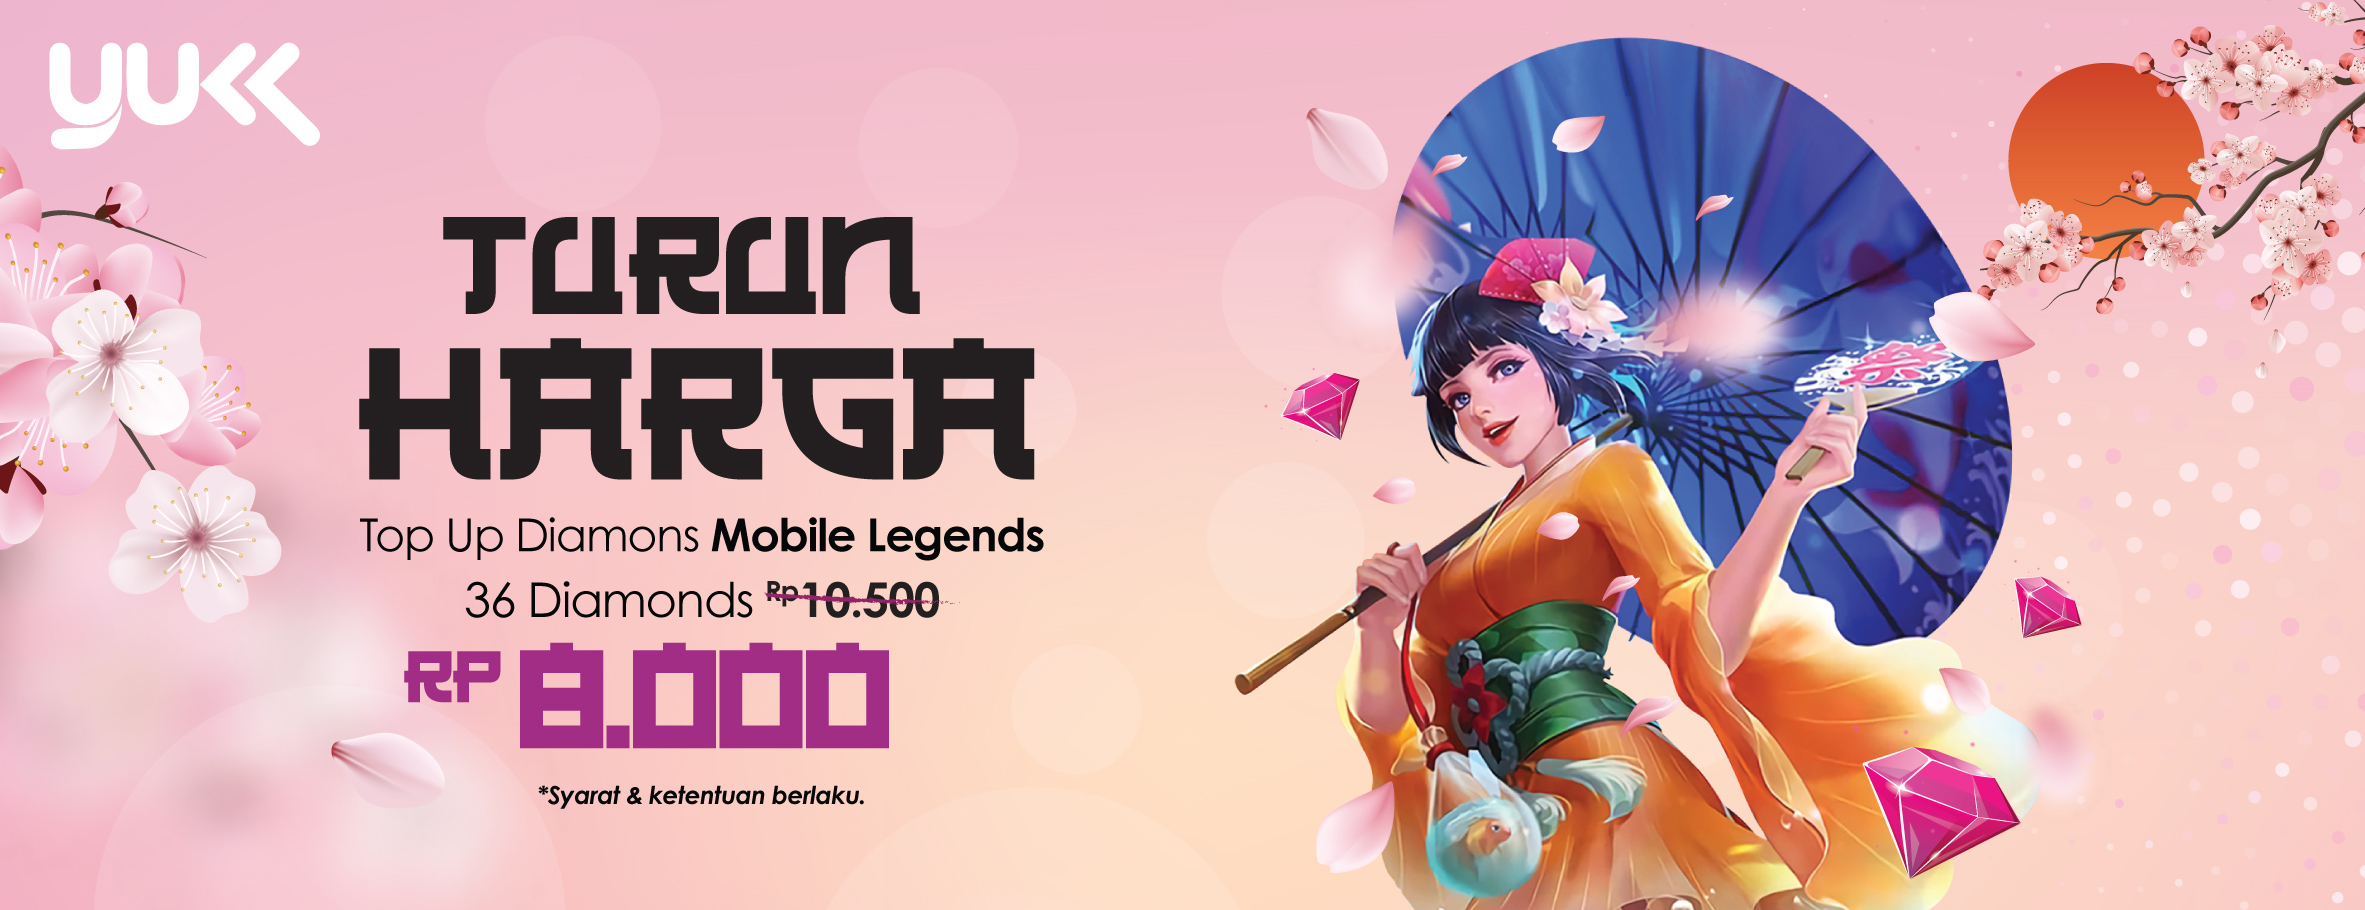 Top Up Diamond Mobile Legends lebih murah pakai YUKK